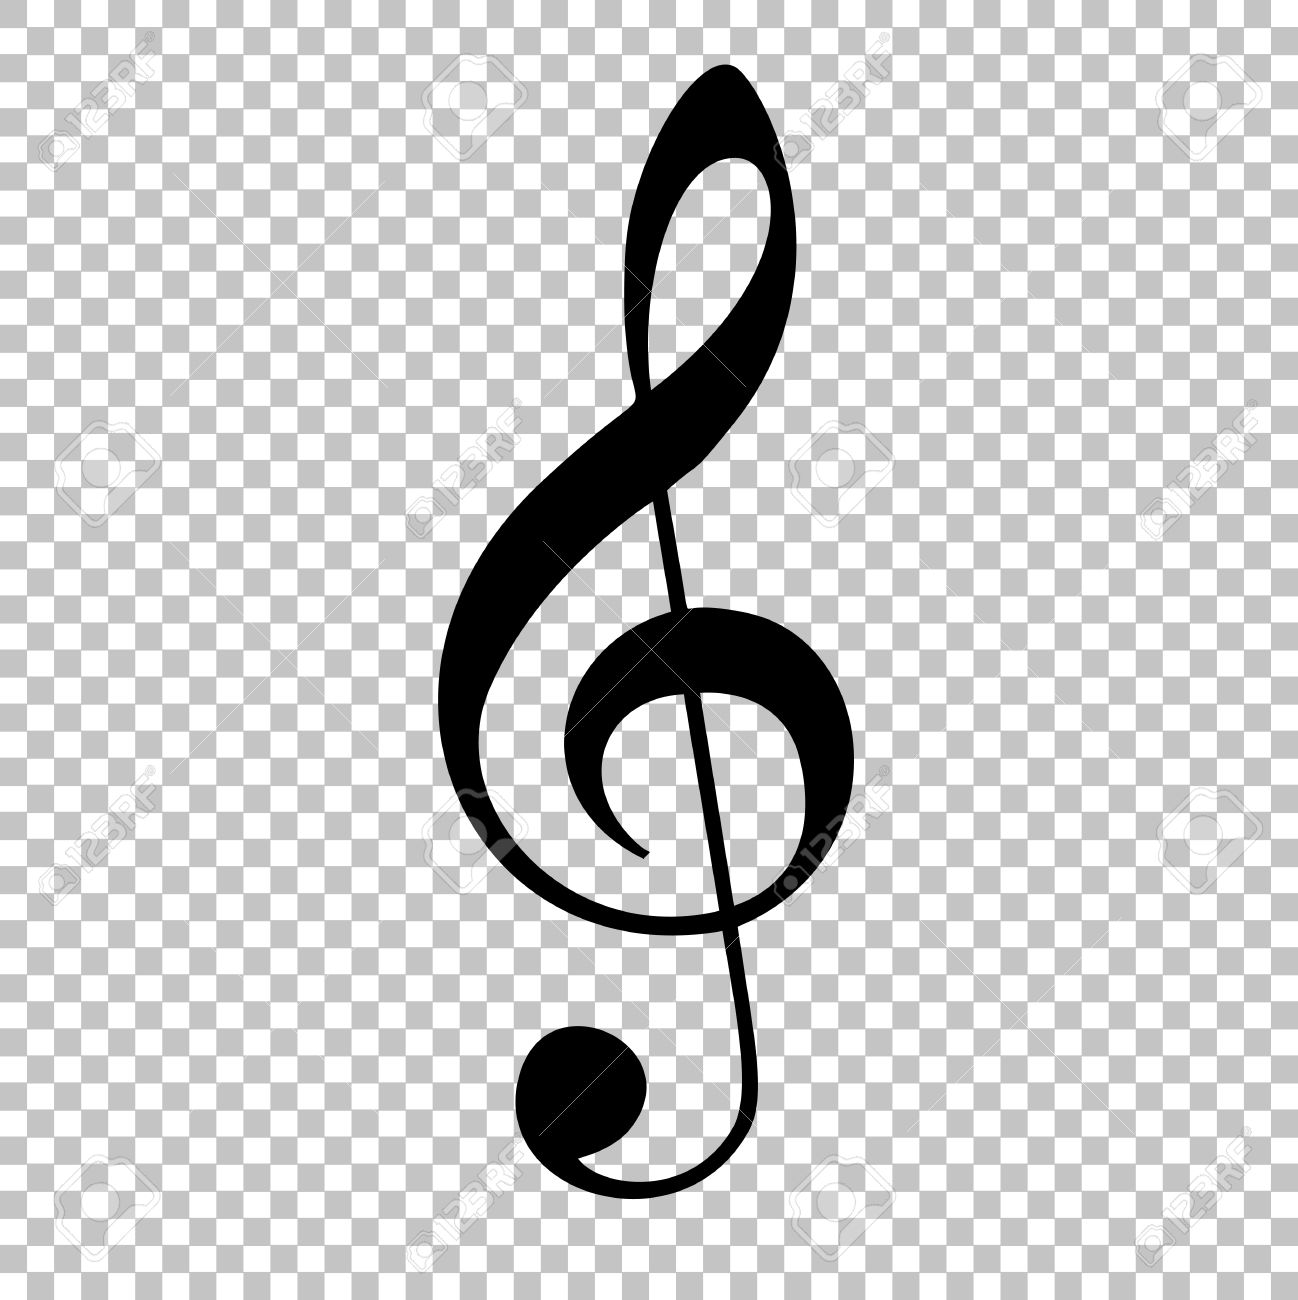 Music violine clef sign  Flat style icon on transparent background